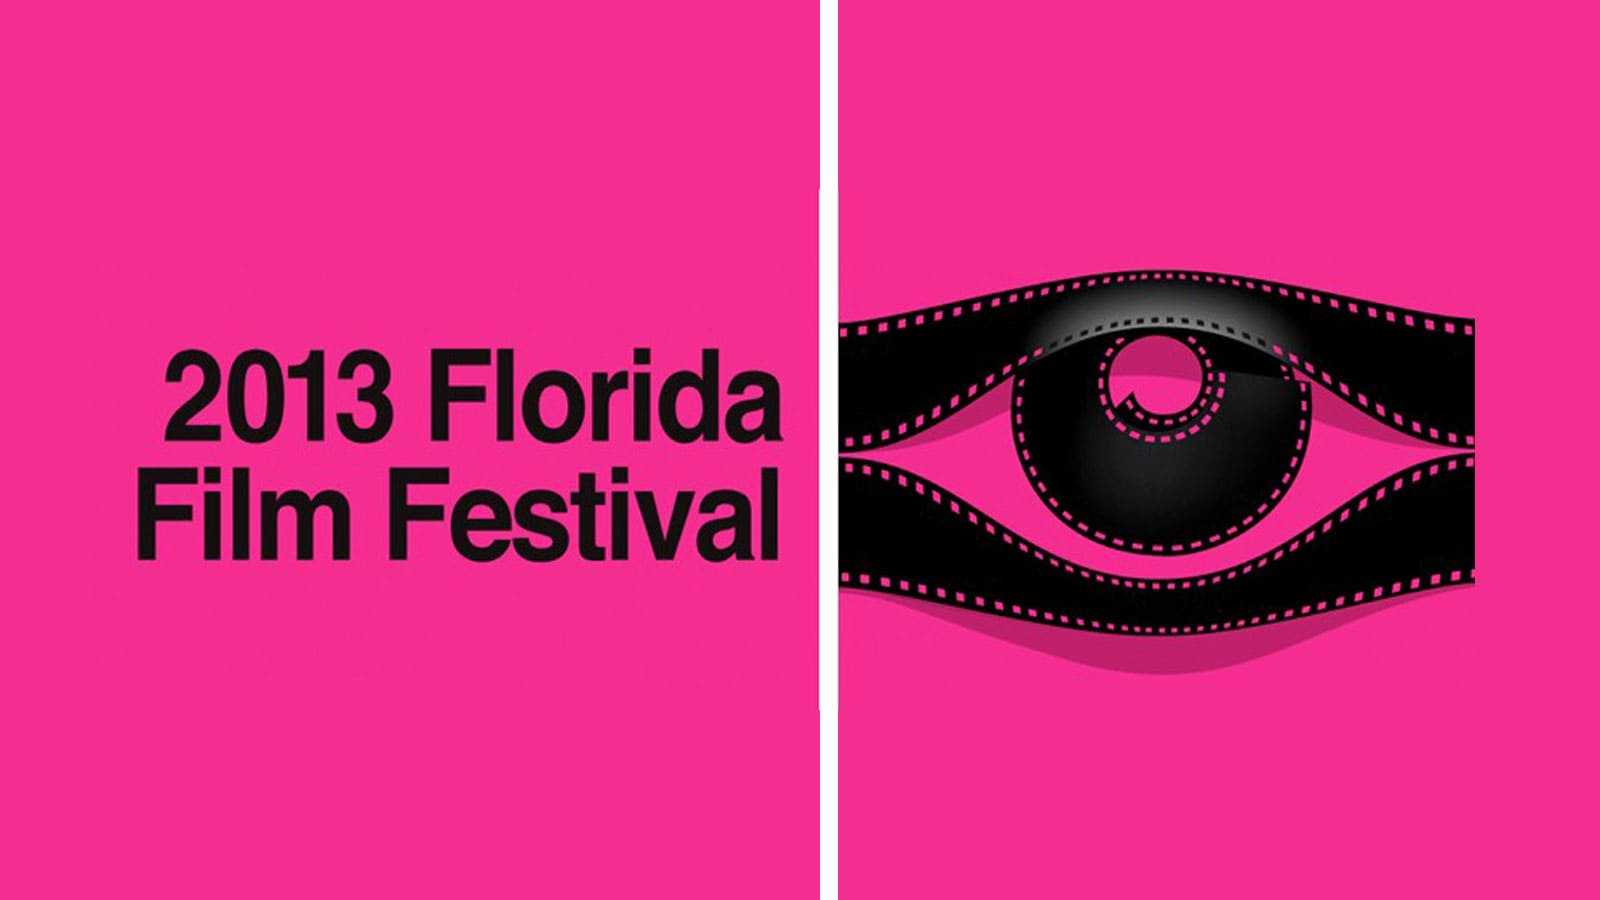 Grads and Staff Involved with 2013 Florida Film Festival - Hero image